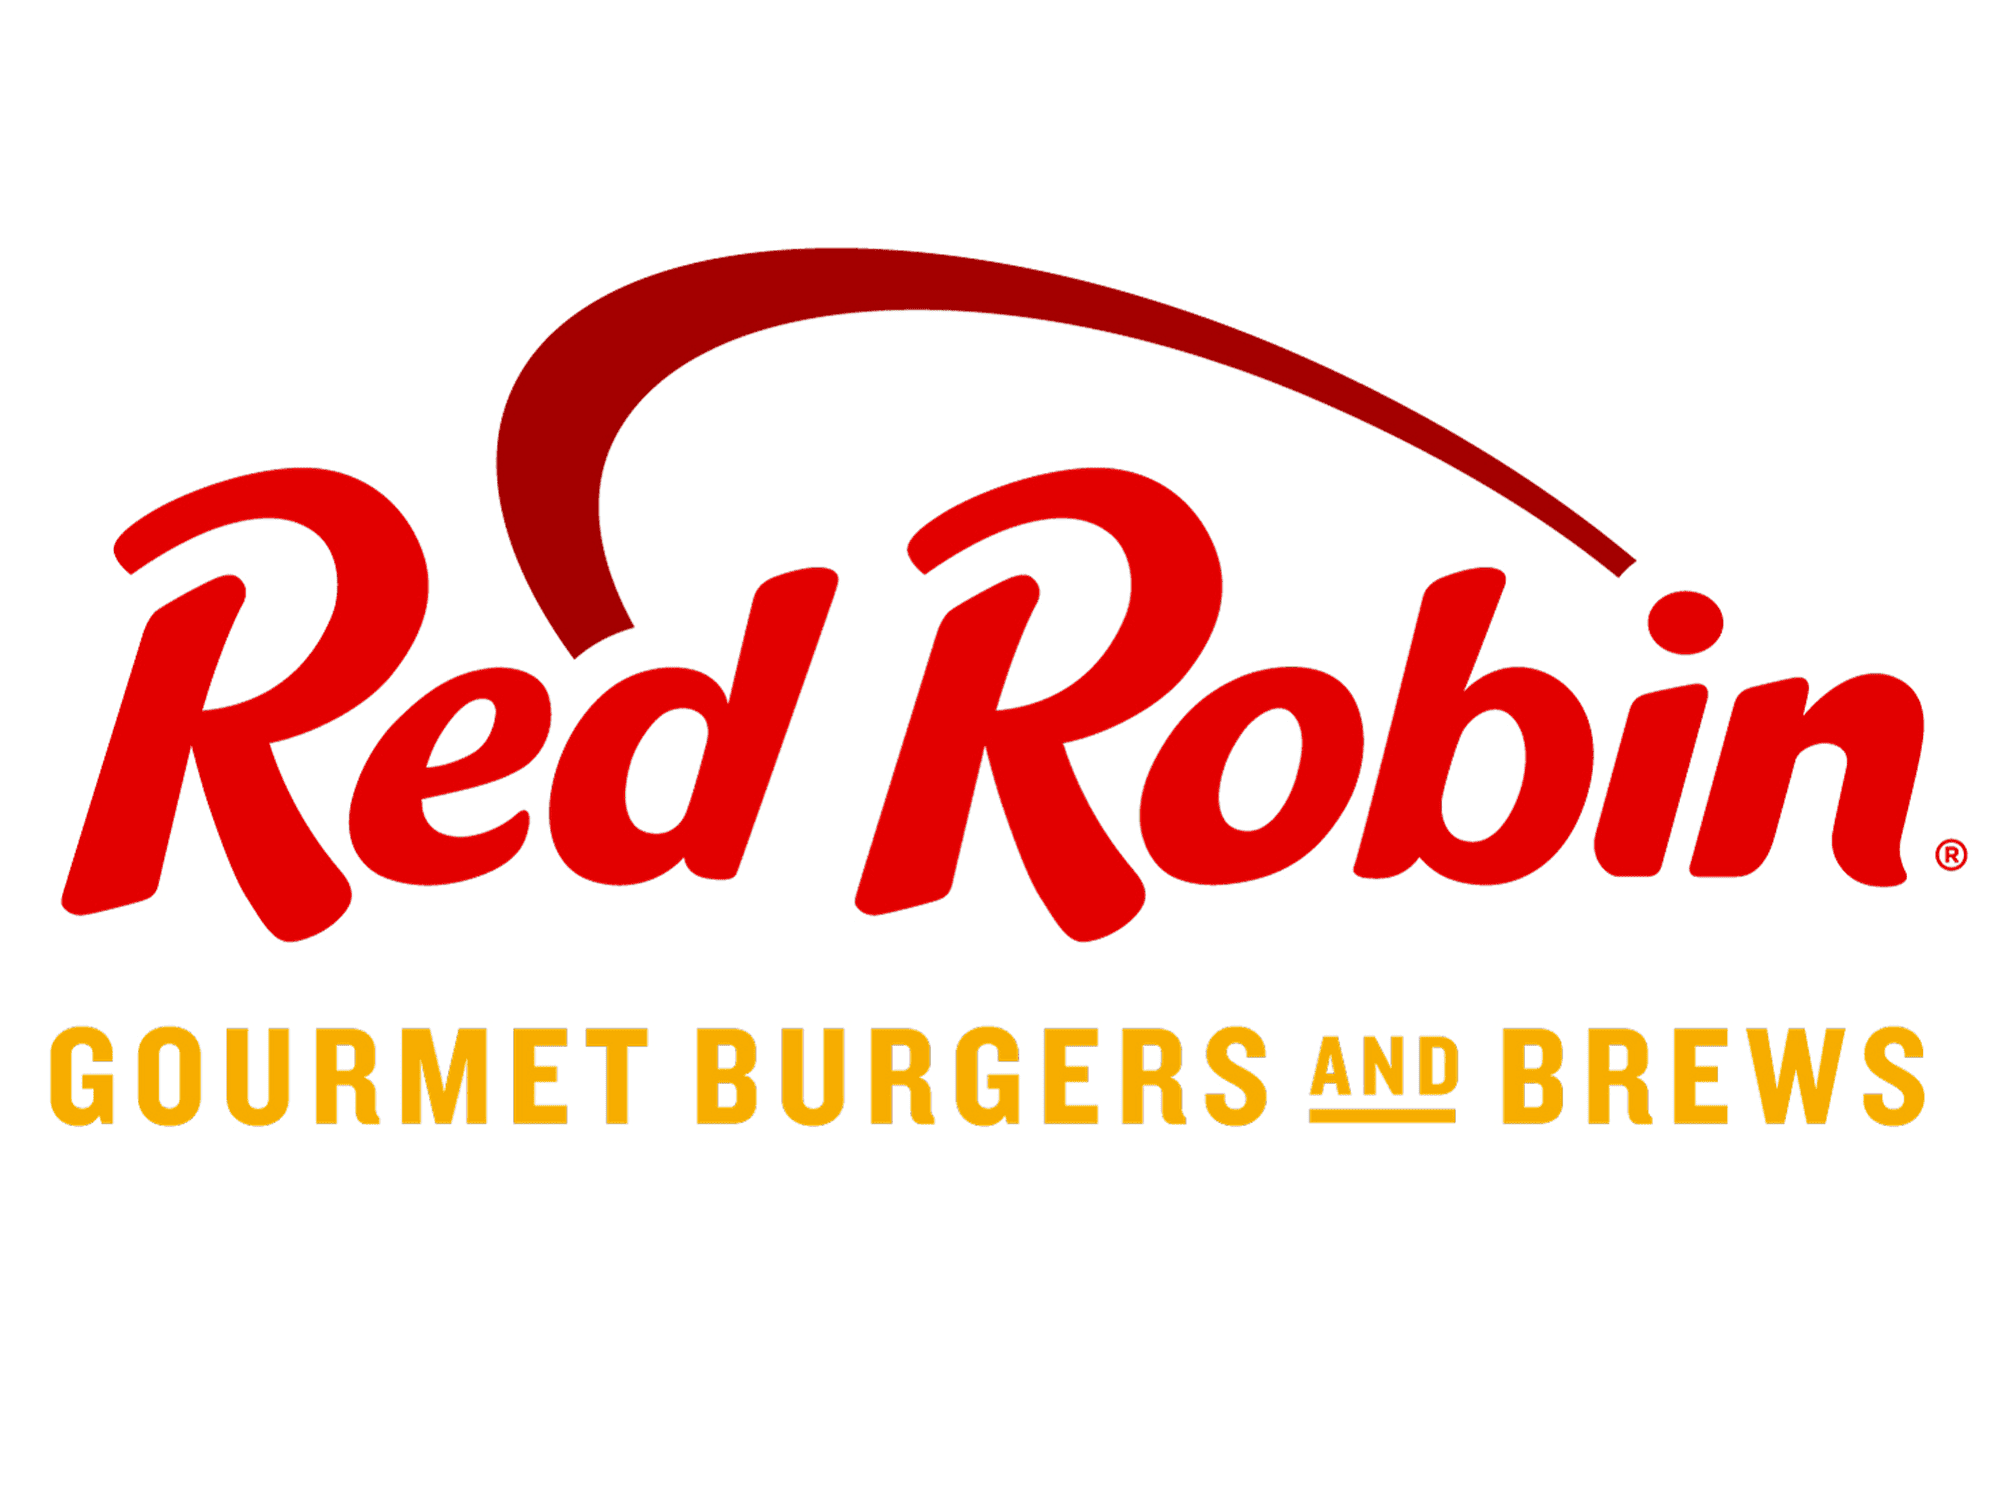 Red robin free veterans day burger and fries for Olive garden veterans day menu 2017